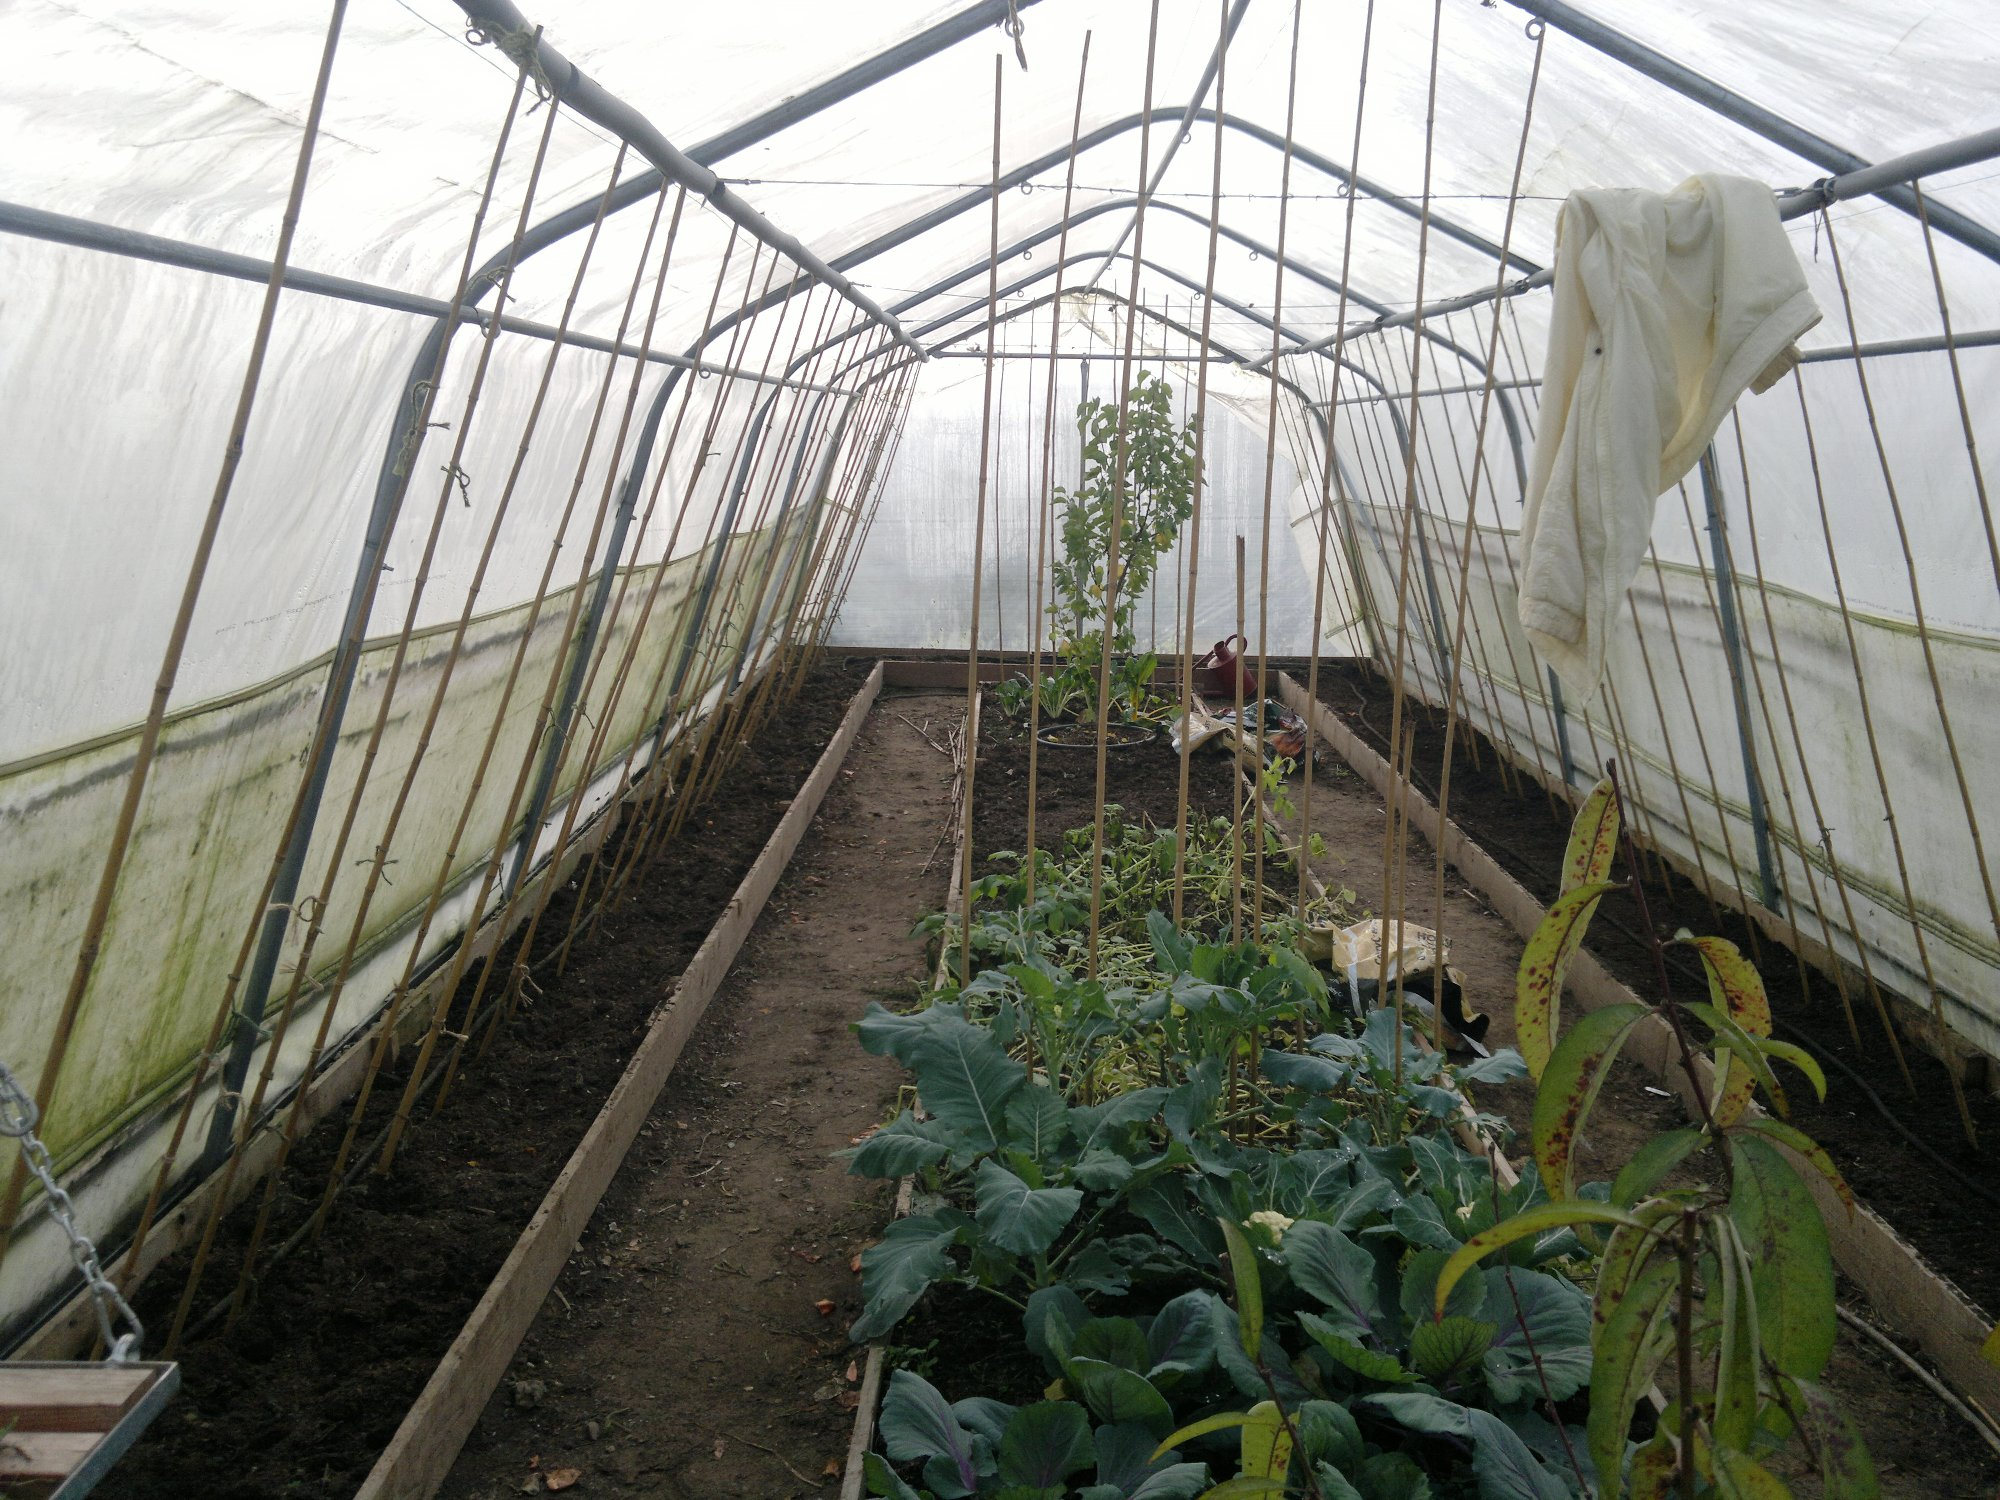 Polytunnel cleared of autumn crops and ready for overwintering